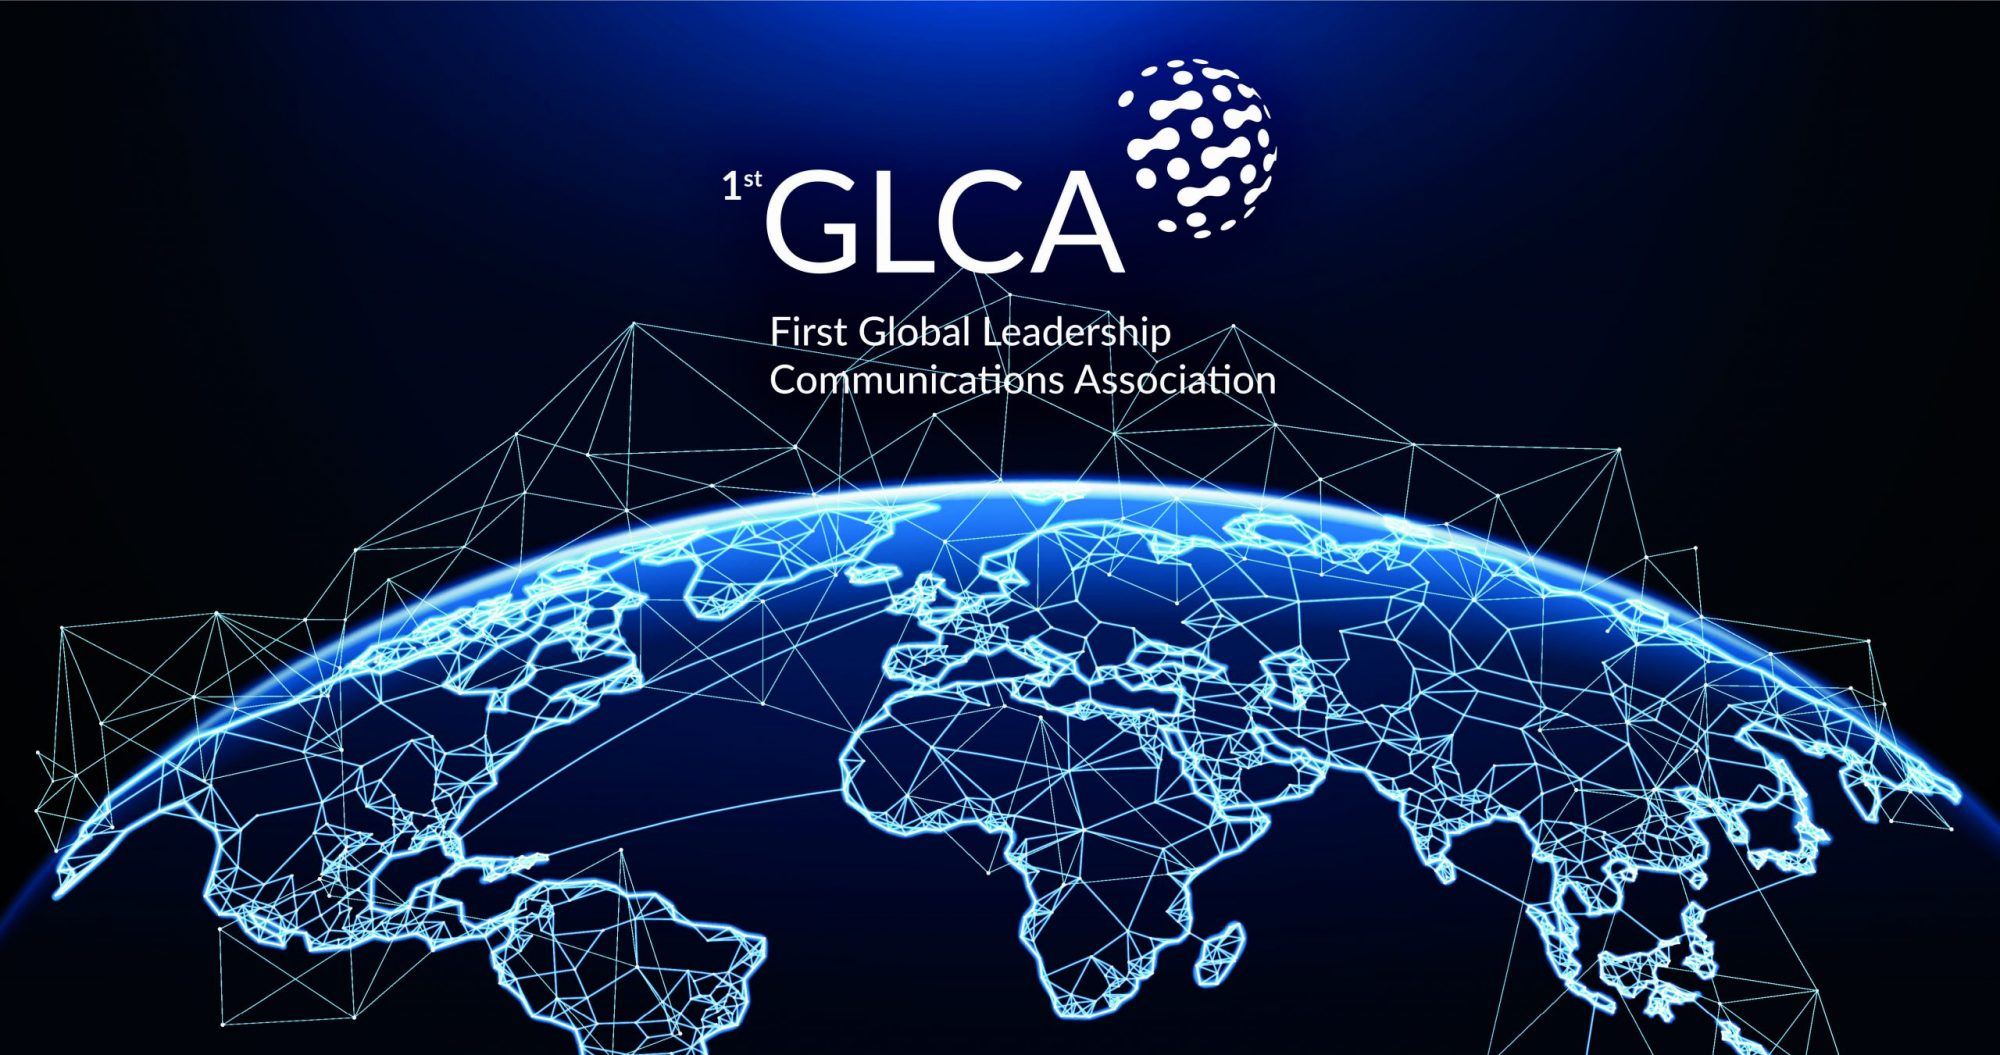 1st Global Leadership Communications Association